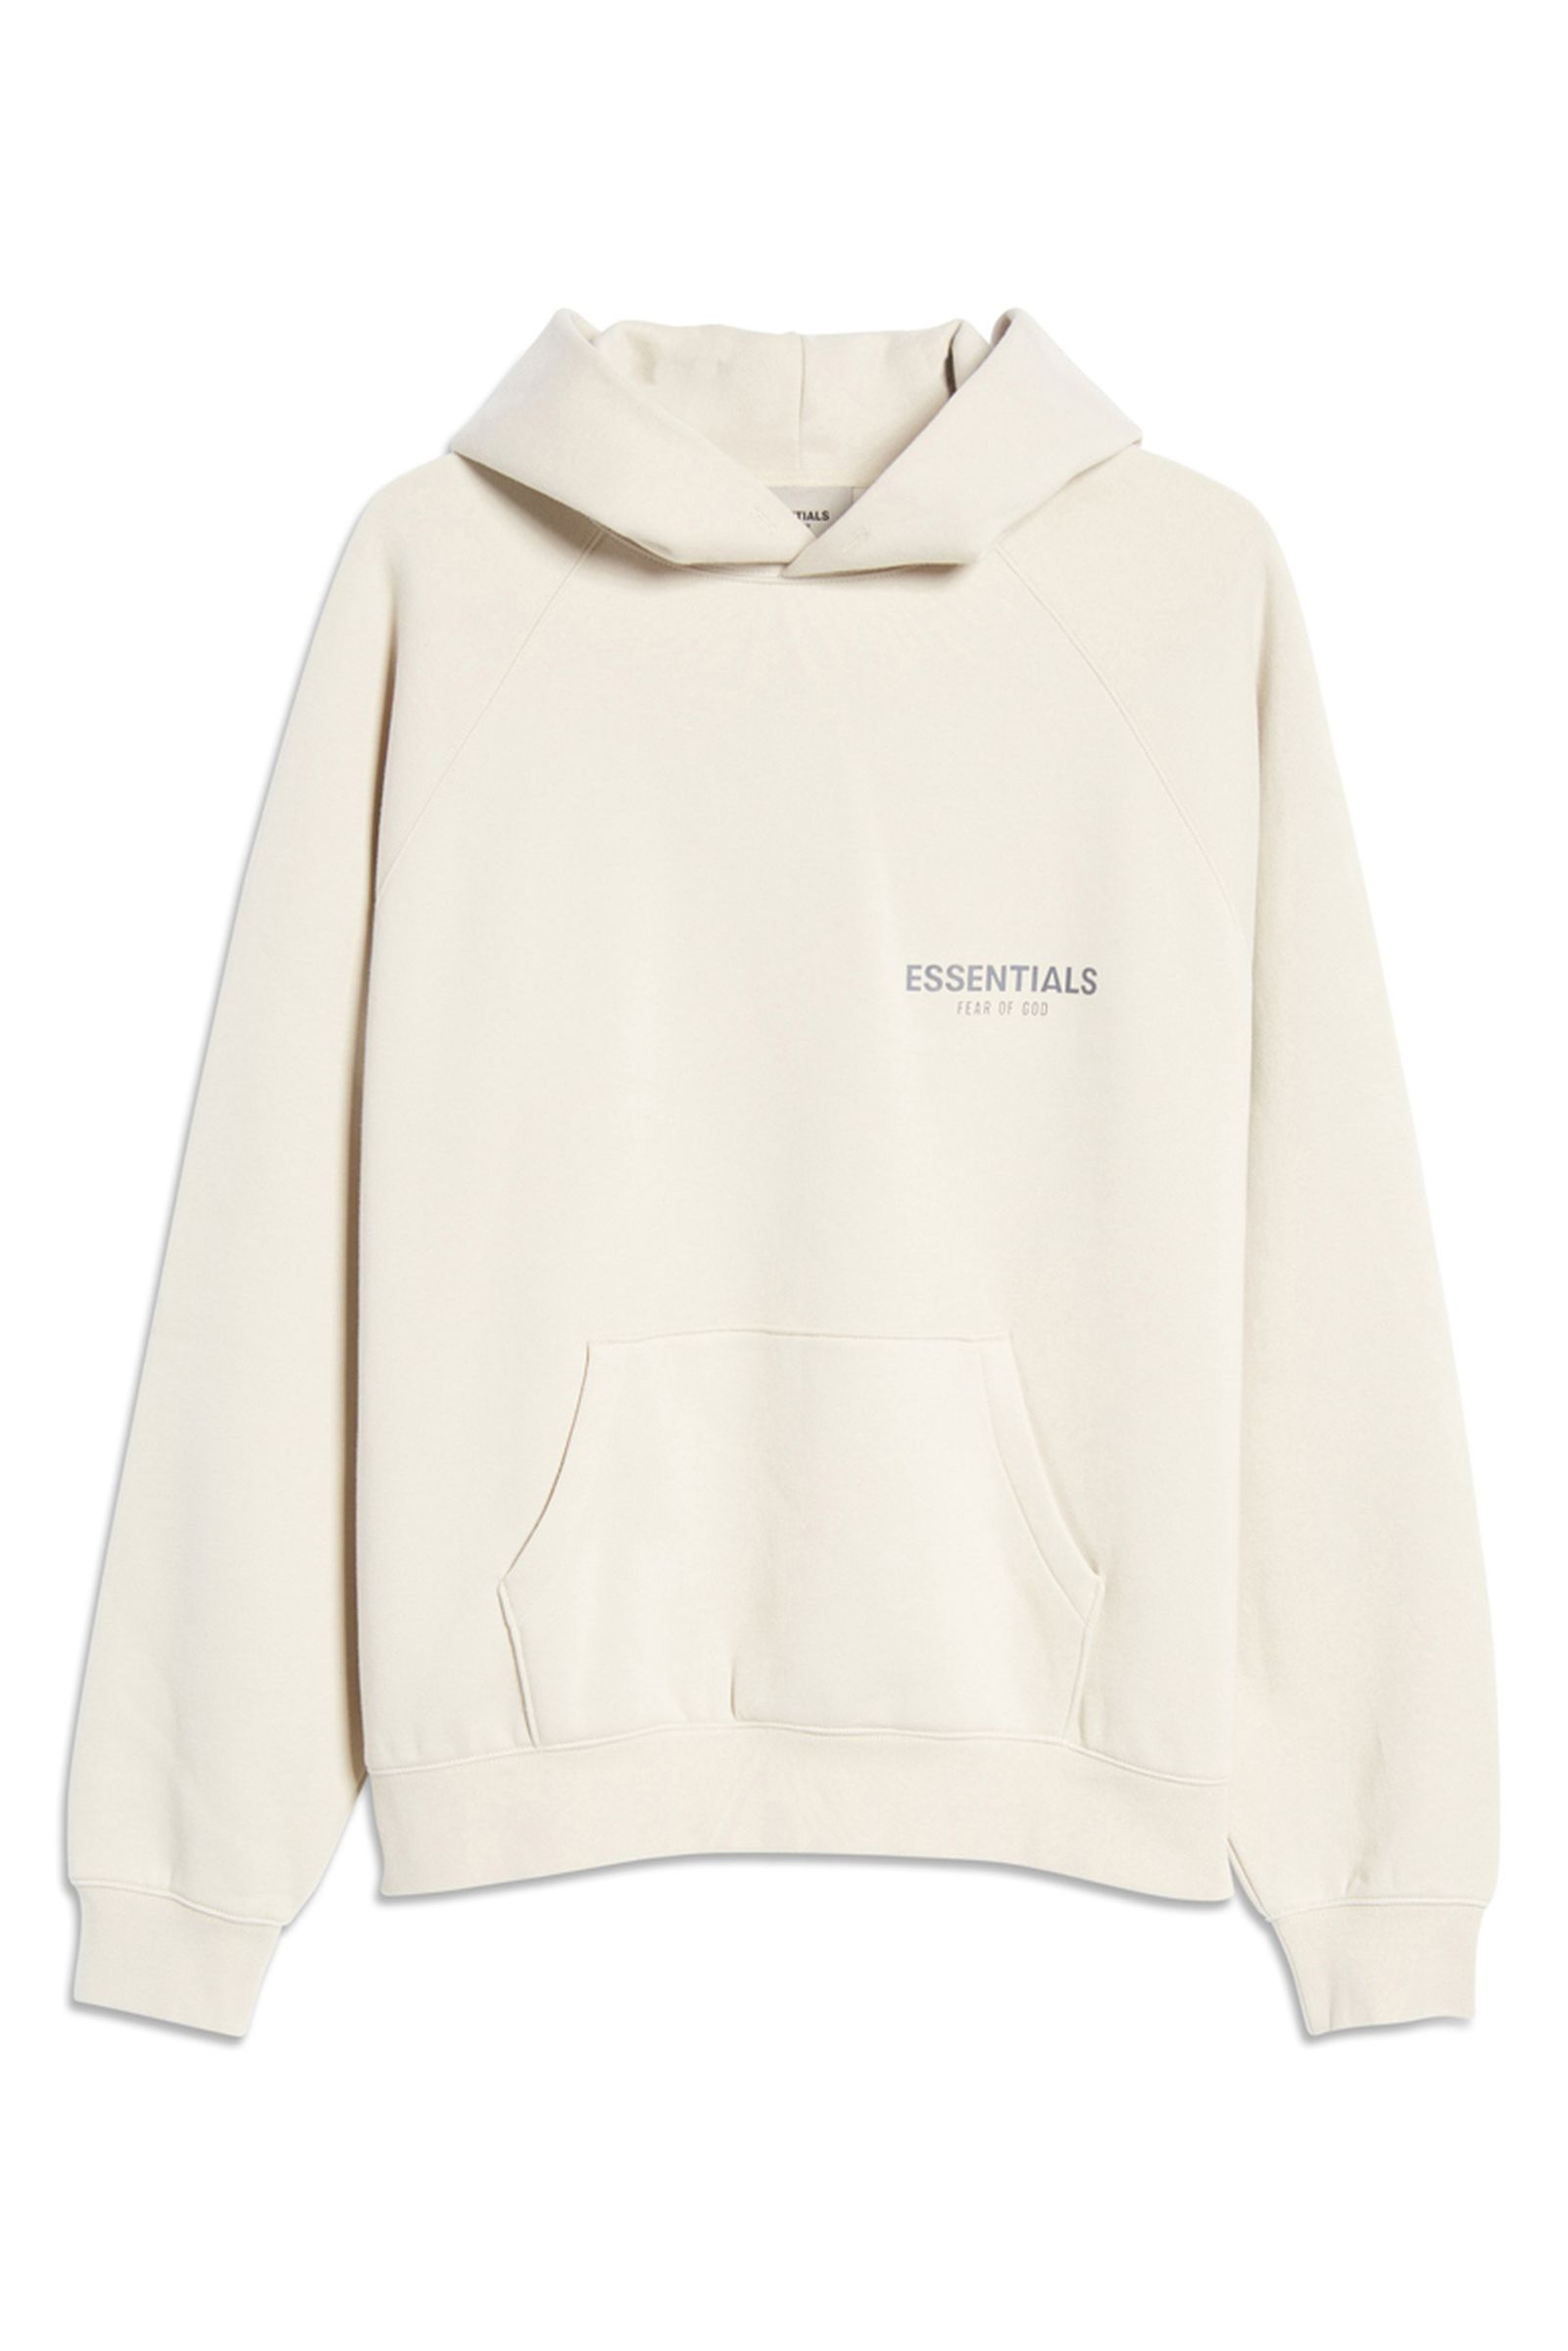 fear of god essentials nordstrom exclusive (11)